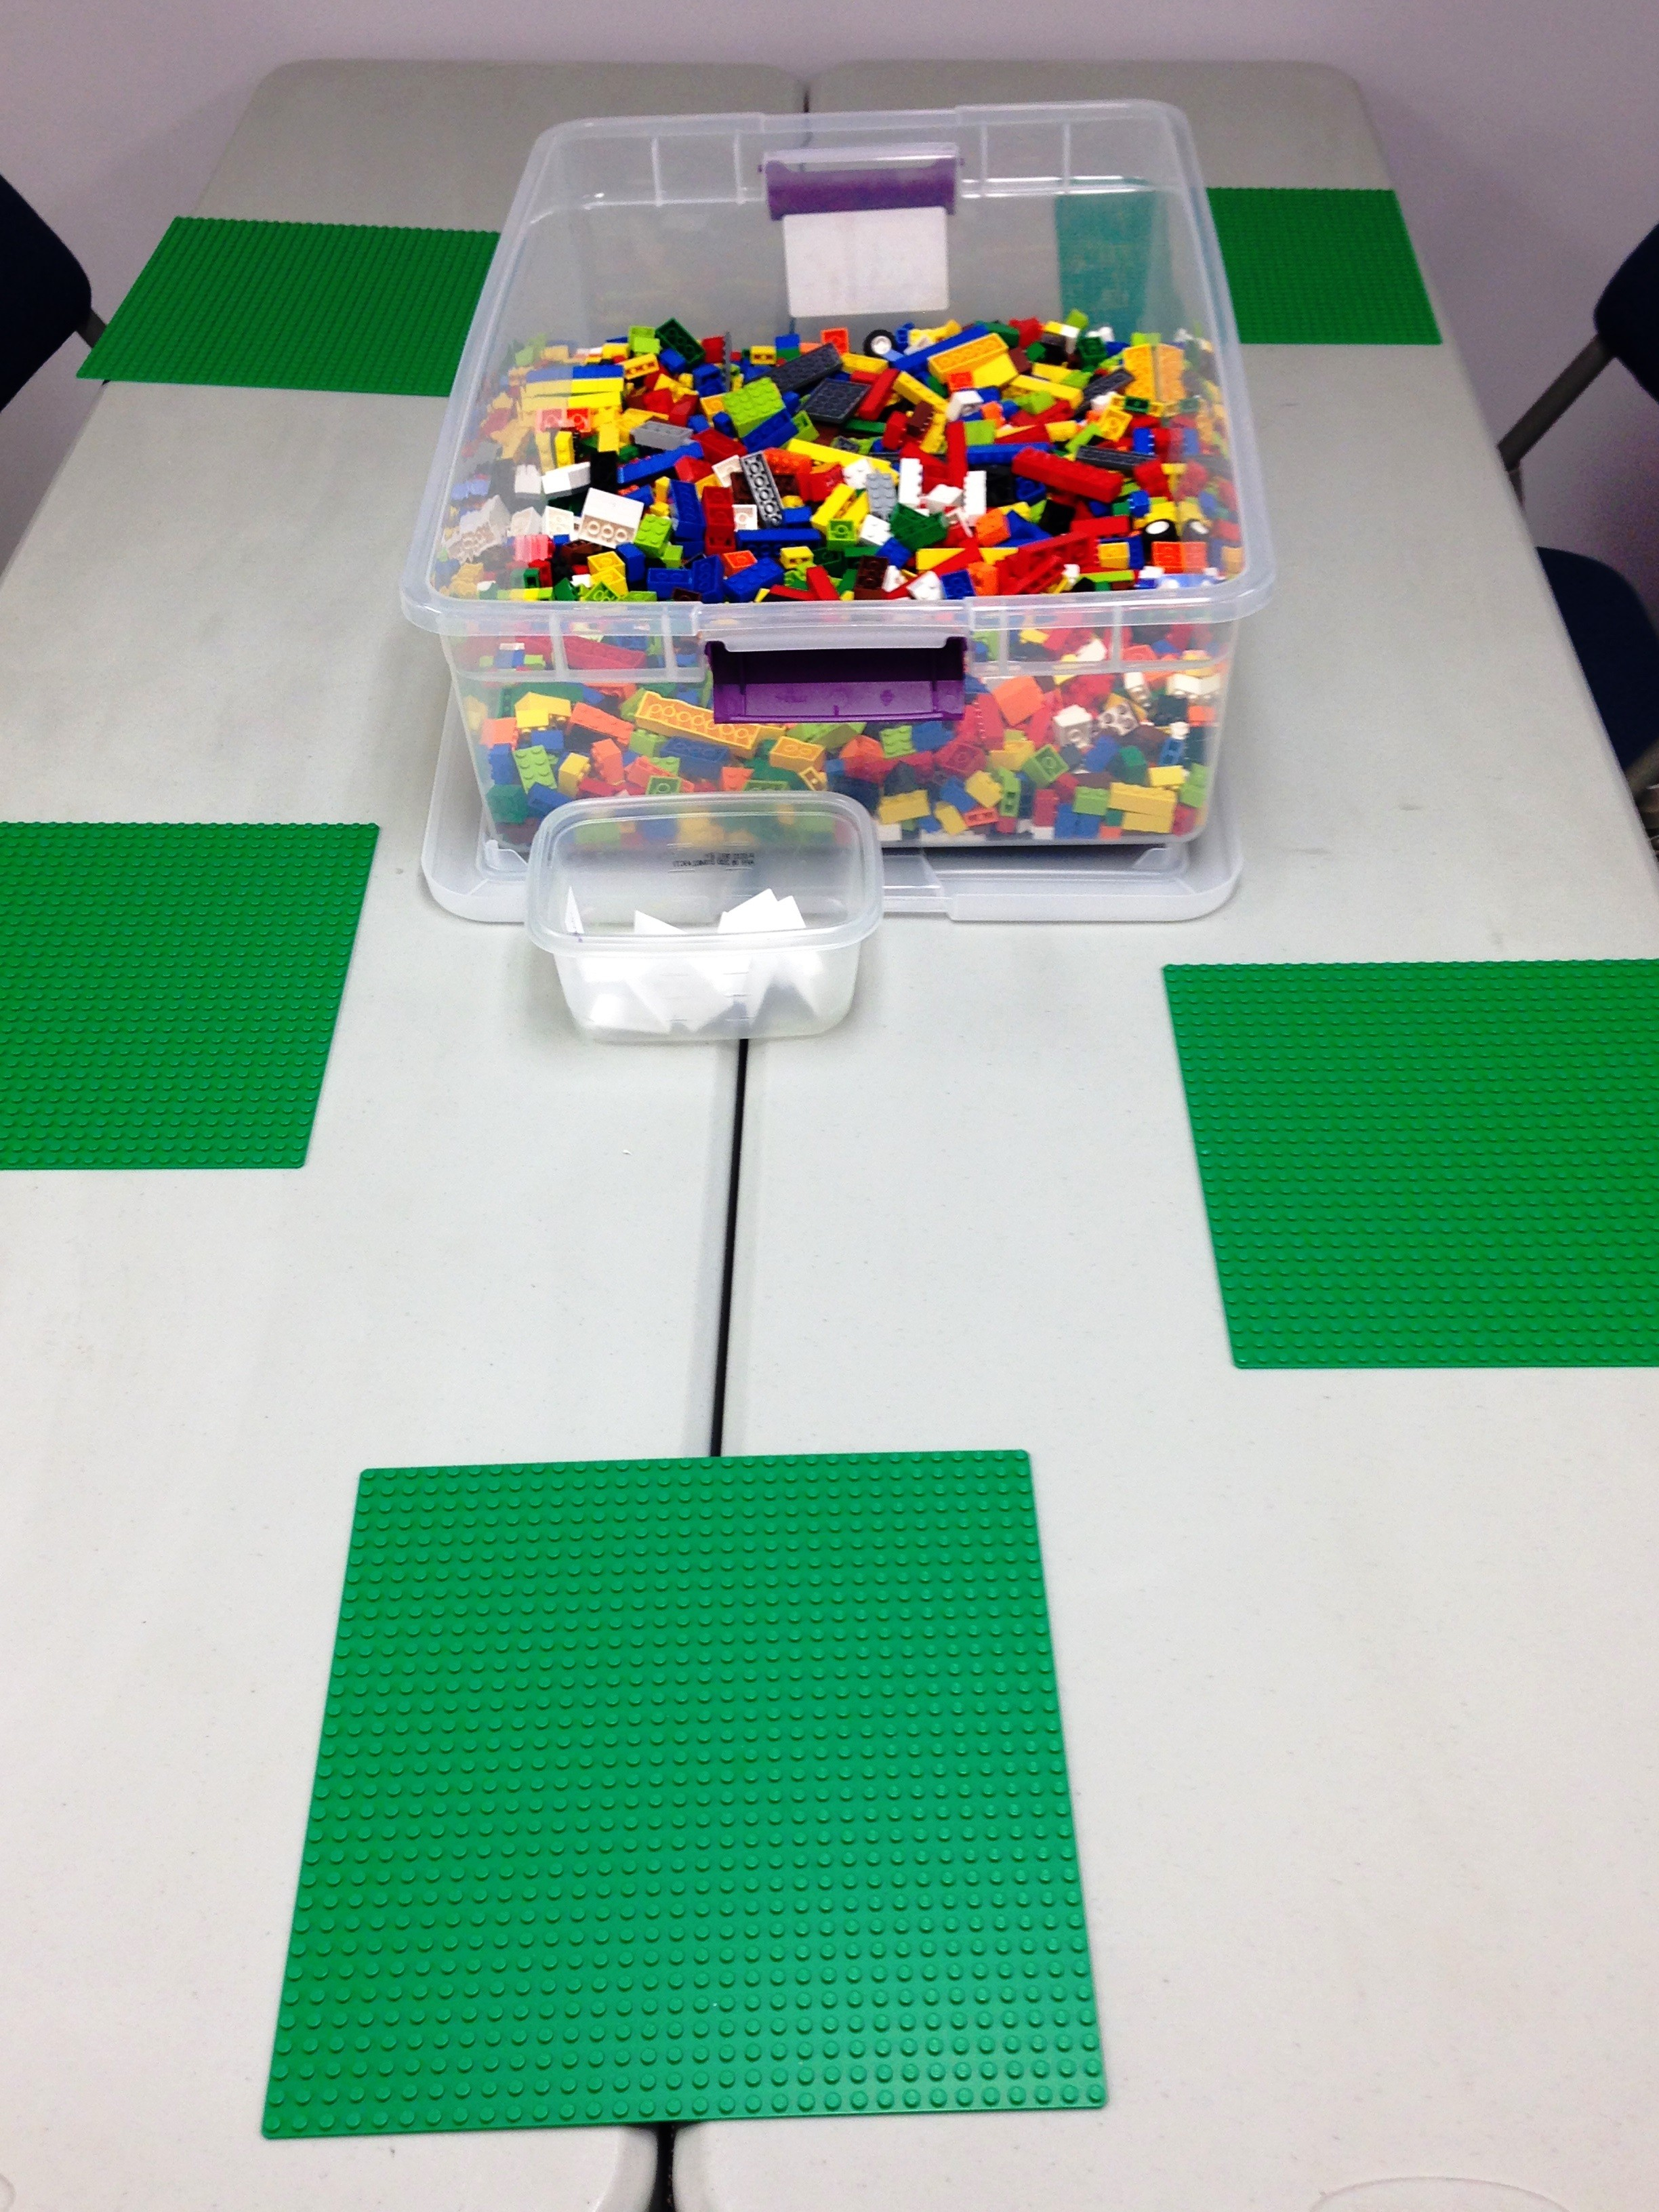 Delightful Playdough Lego Stamping This Station Included Lego Bricks And Playdoh For  The Kids To Stamp On They Loved Making Letters And Race Car Tracks With  Table En ... Photo